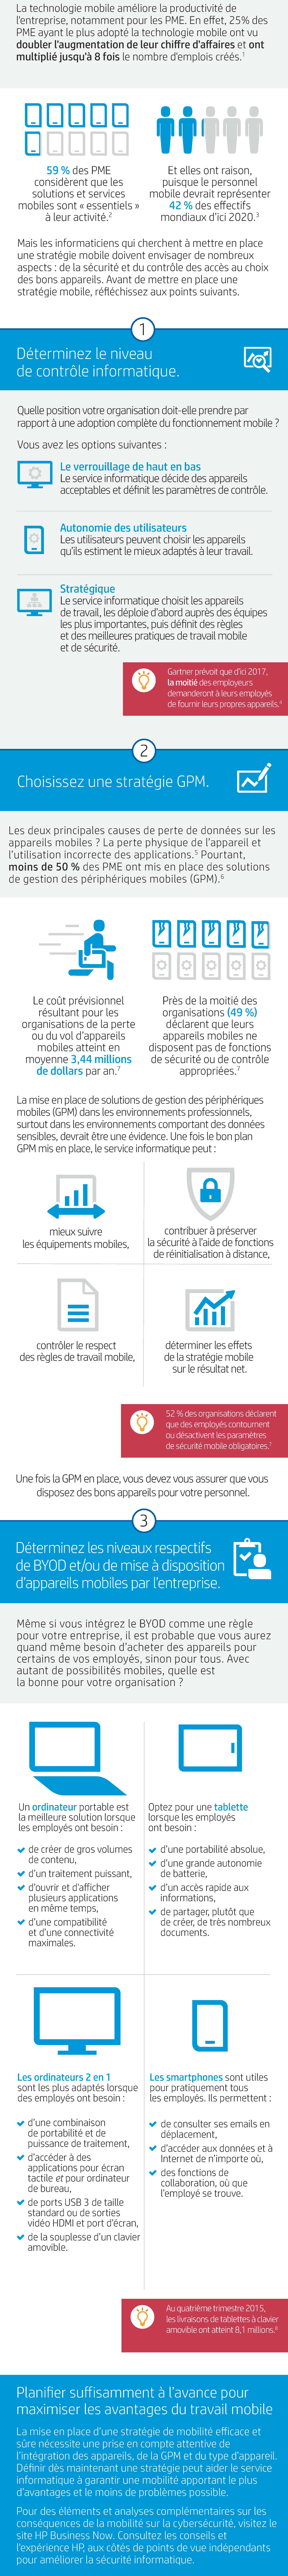 infographie-mobilite